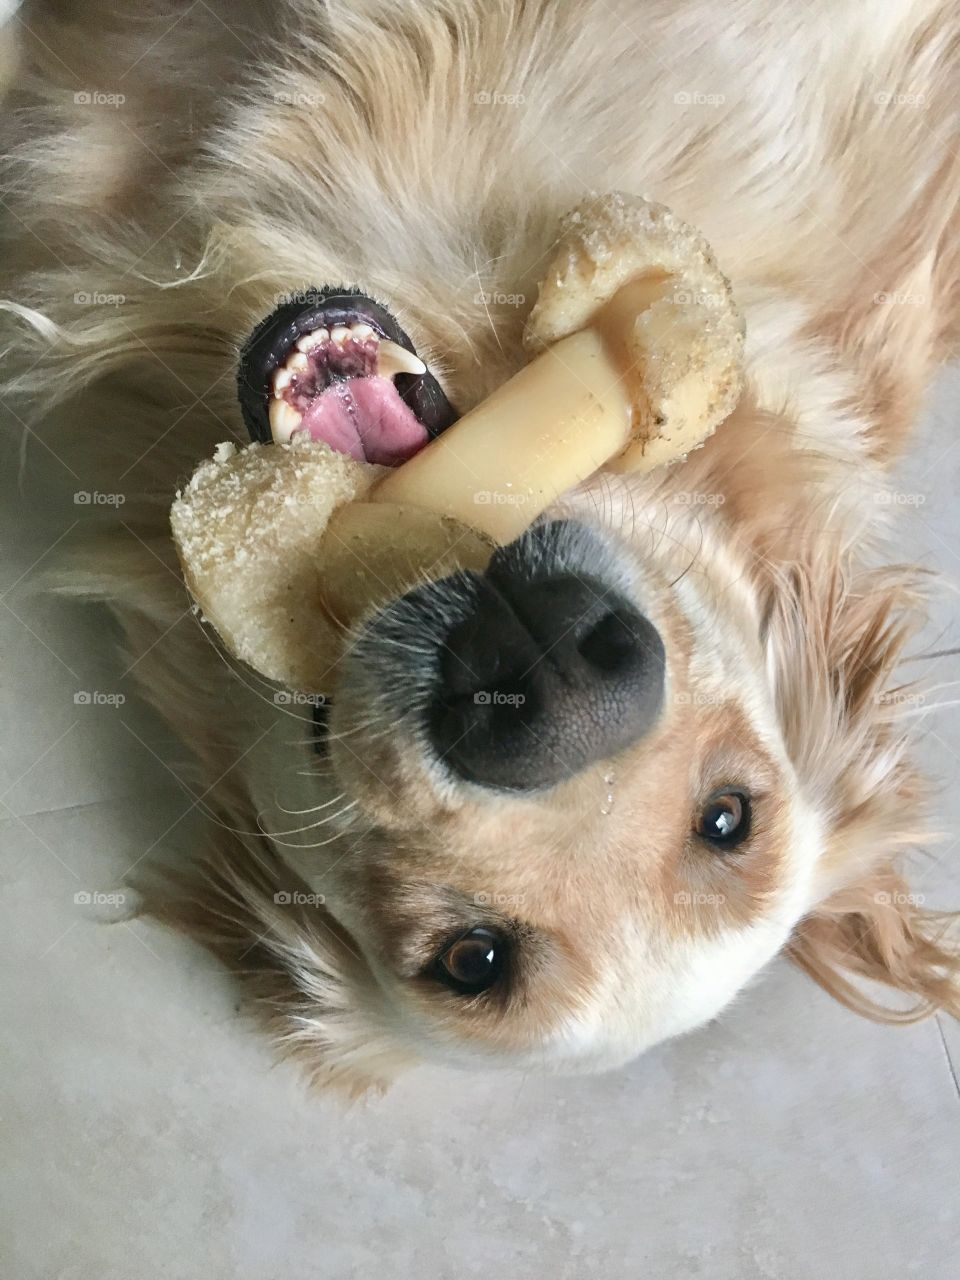 Chew dog toy and playful golden retriever